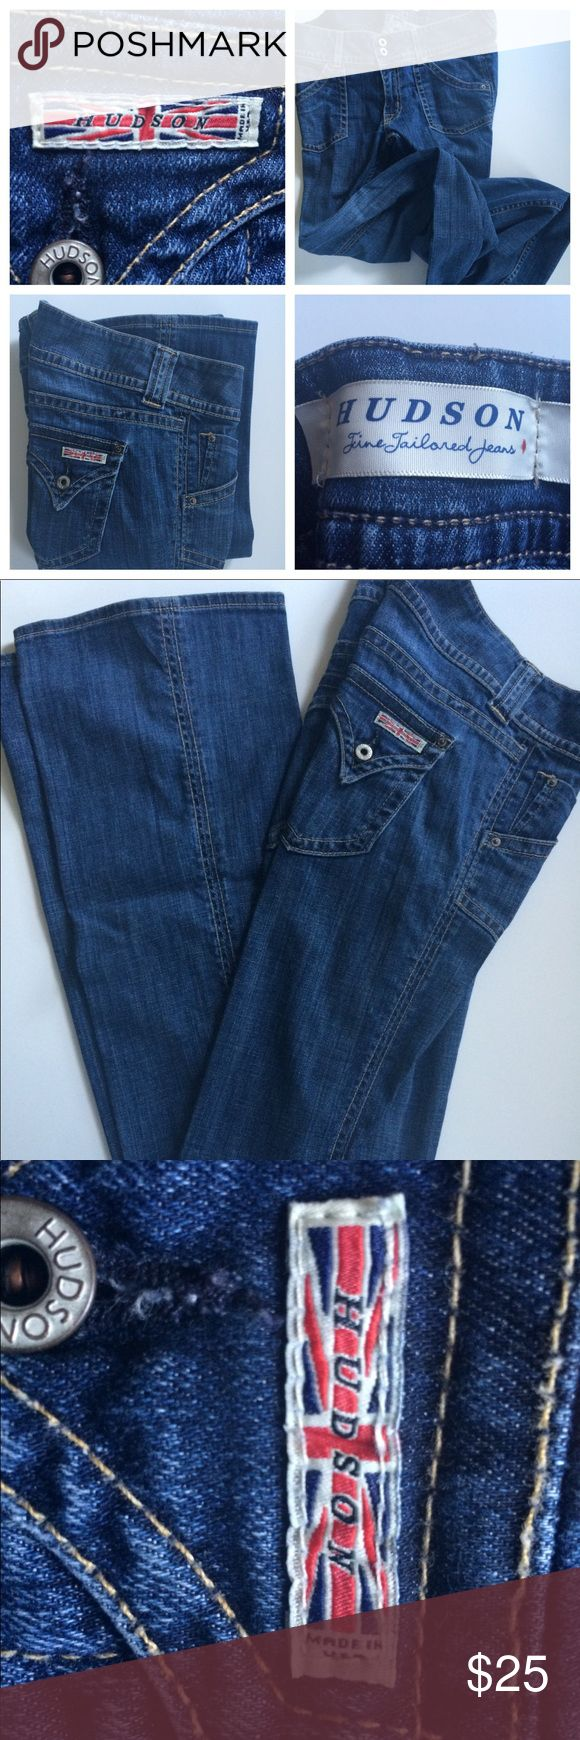 Hudson Jeans Size 30 Bootleg Hudson Jeans Size 30 Bootleg Cut. Great Jeans. Excellent condition. Double pockets in front; Classic Union Jack Hudson symbol on back pocket. Perfect for everything from dressy casual night out to eating Thai food on the couch. Hudson Jeans Jeans Boot Cut